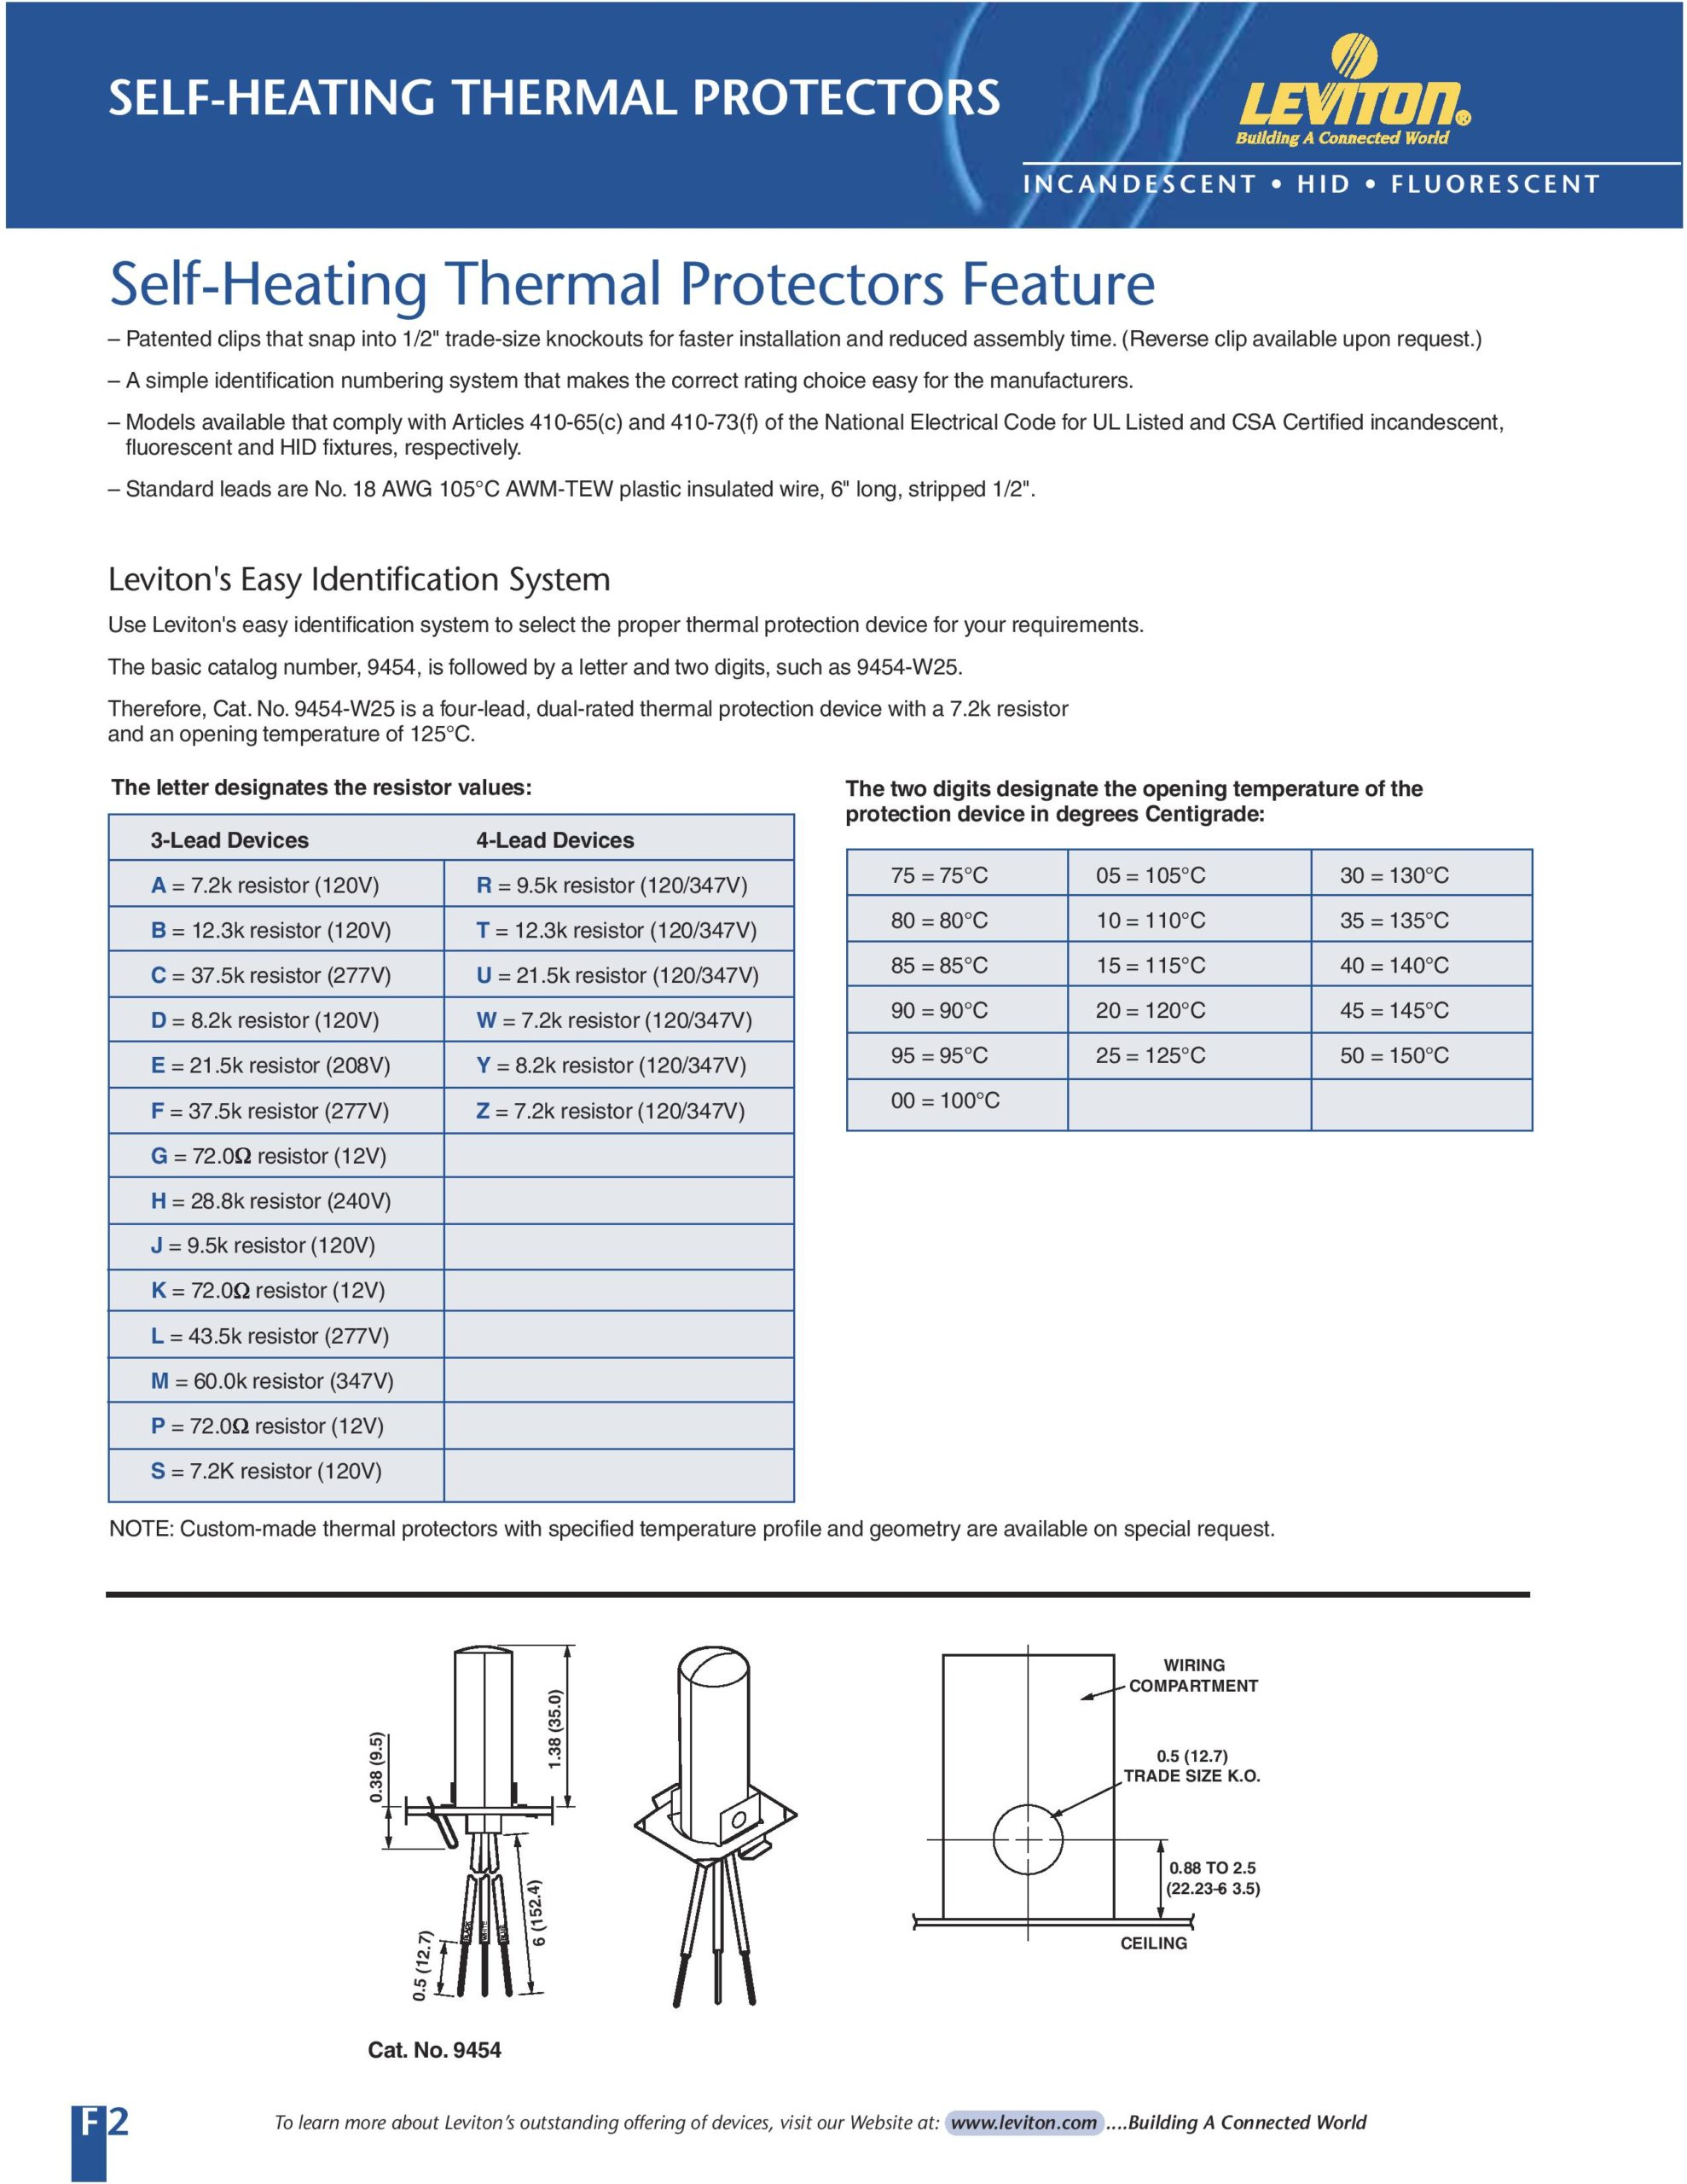 Thermal Protector Spec Sheet